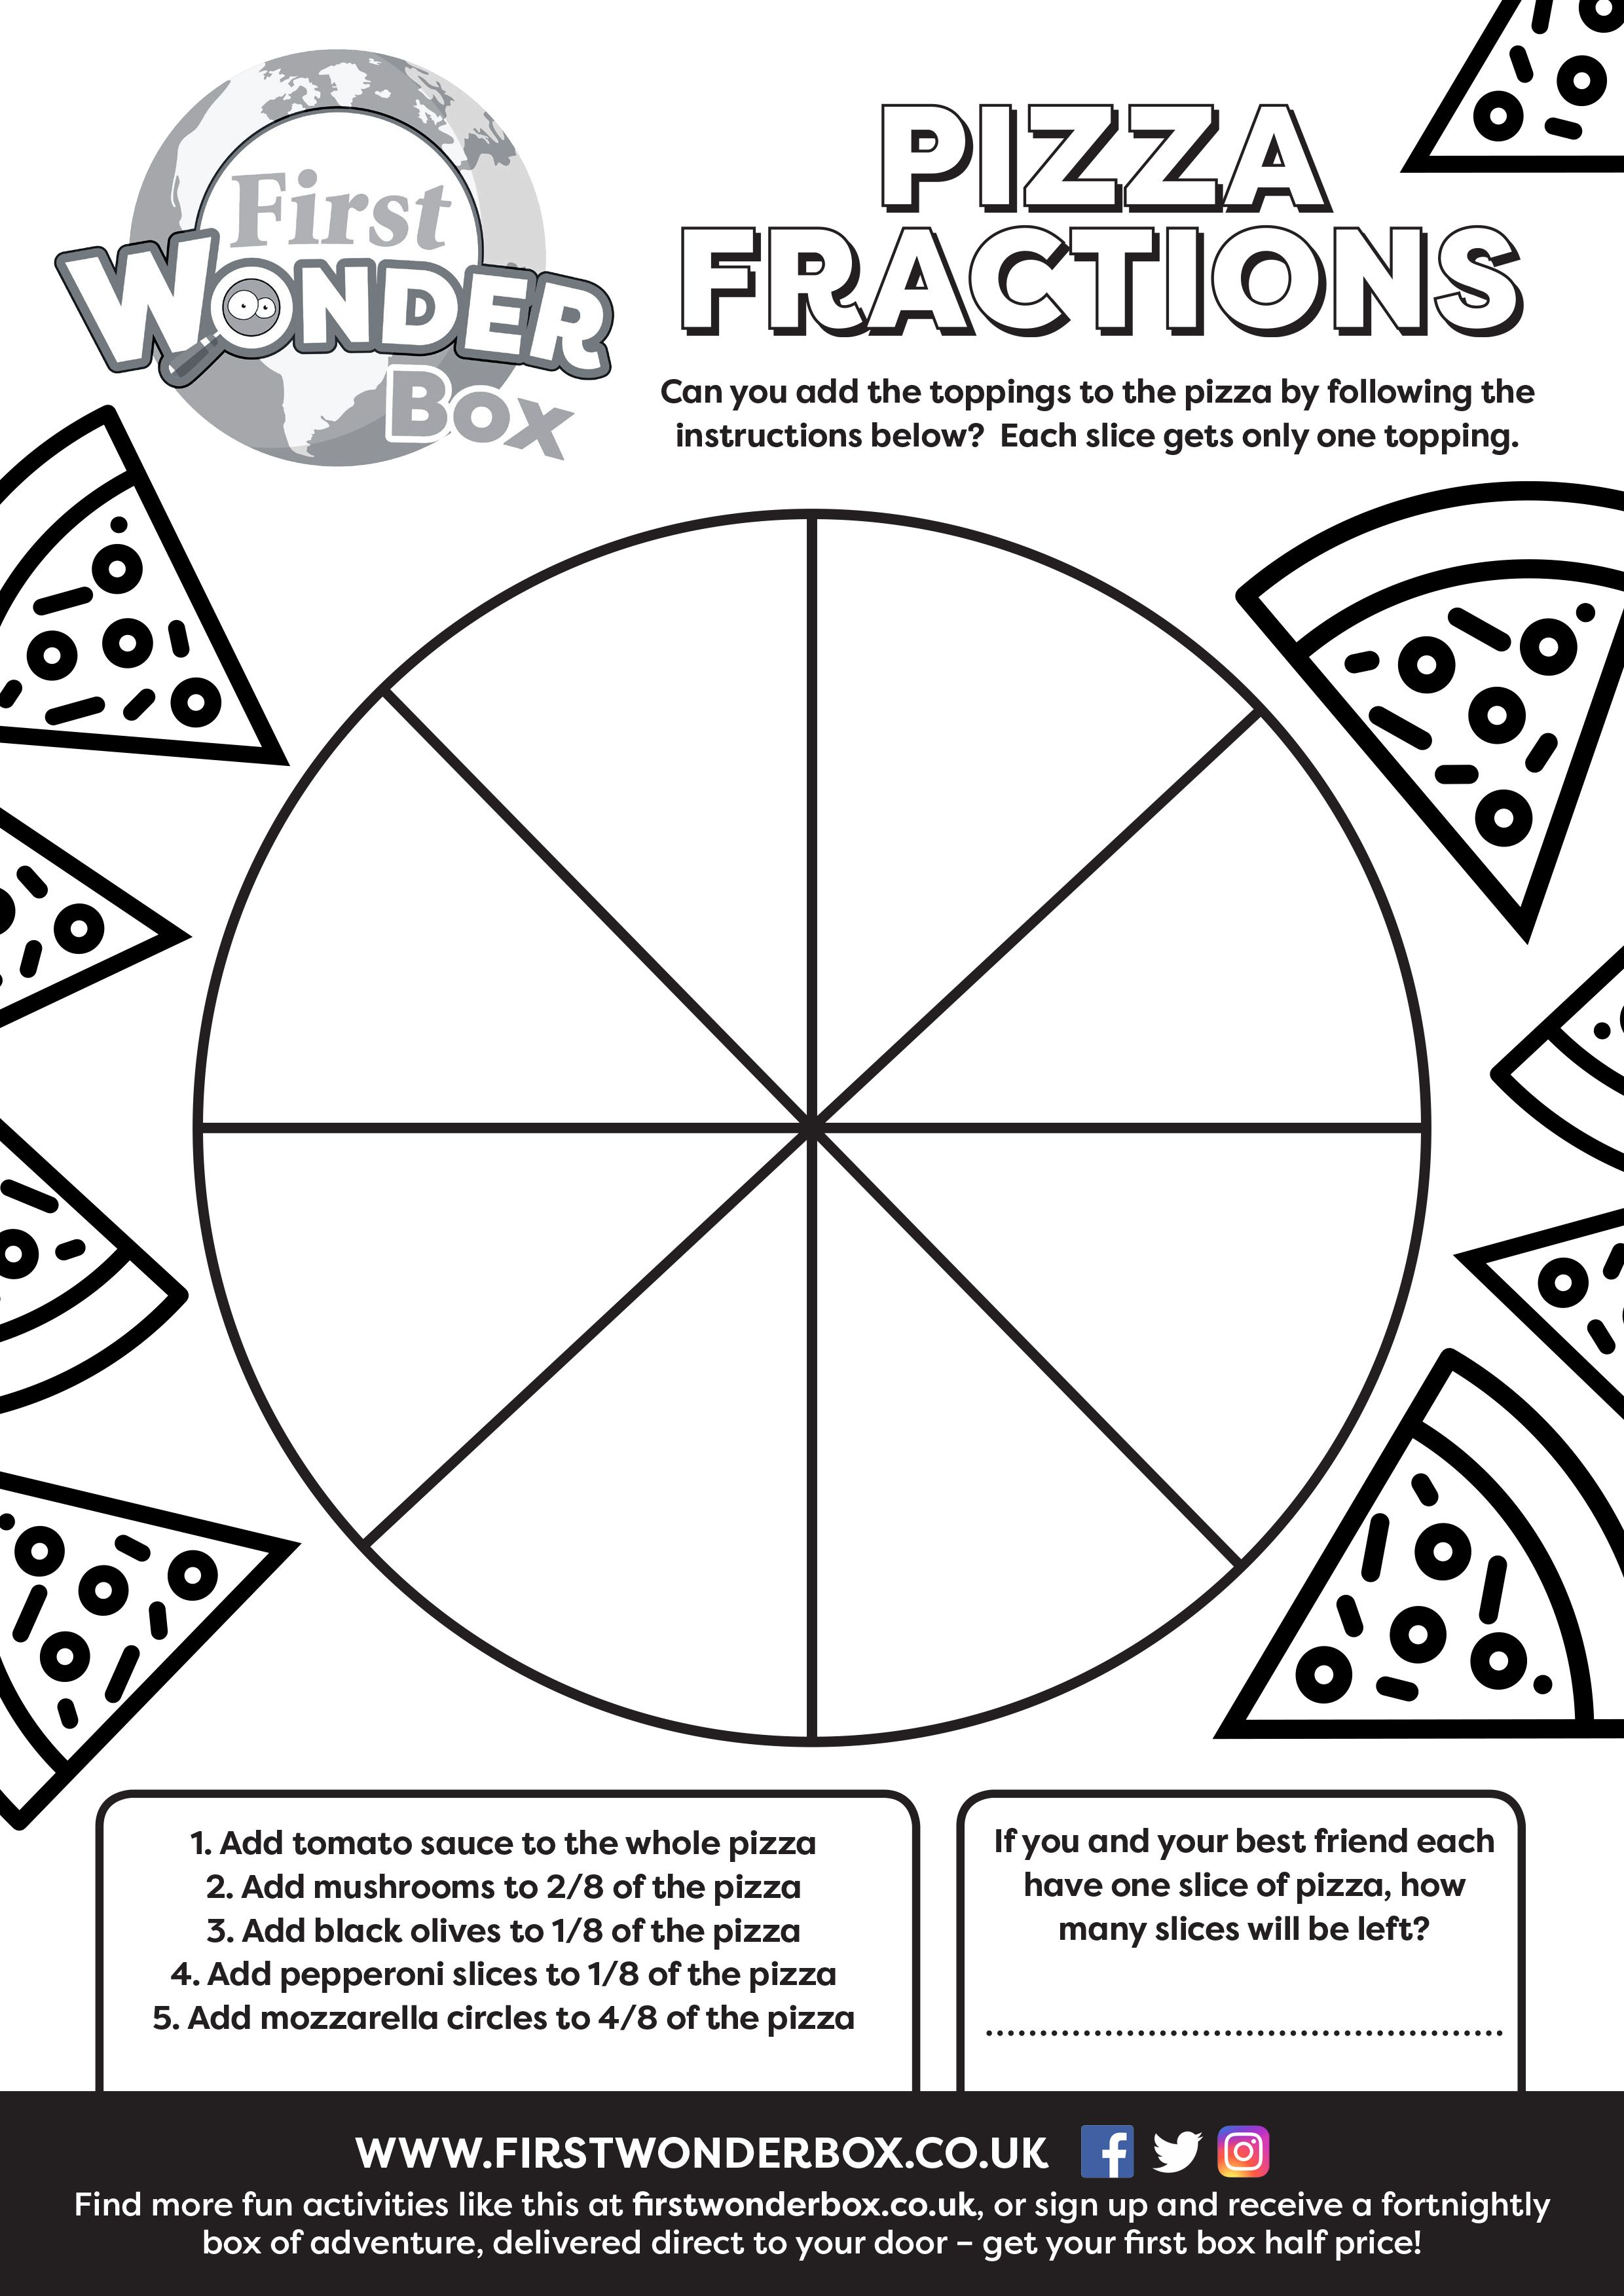 Download And Print This Free Pizza Fractions Activity